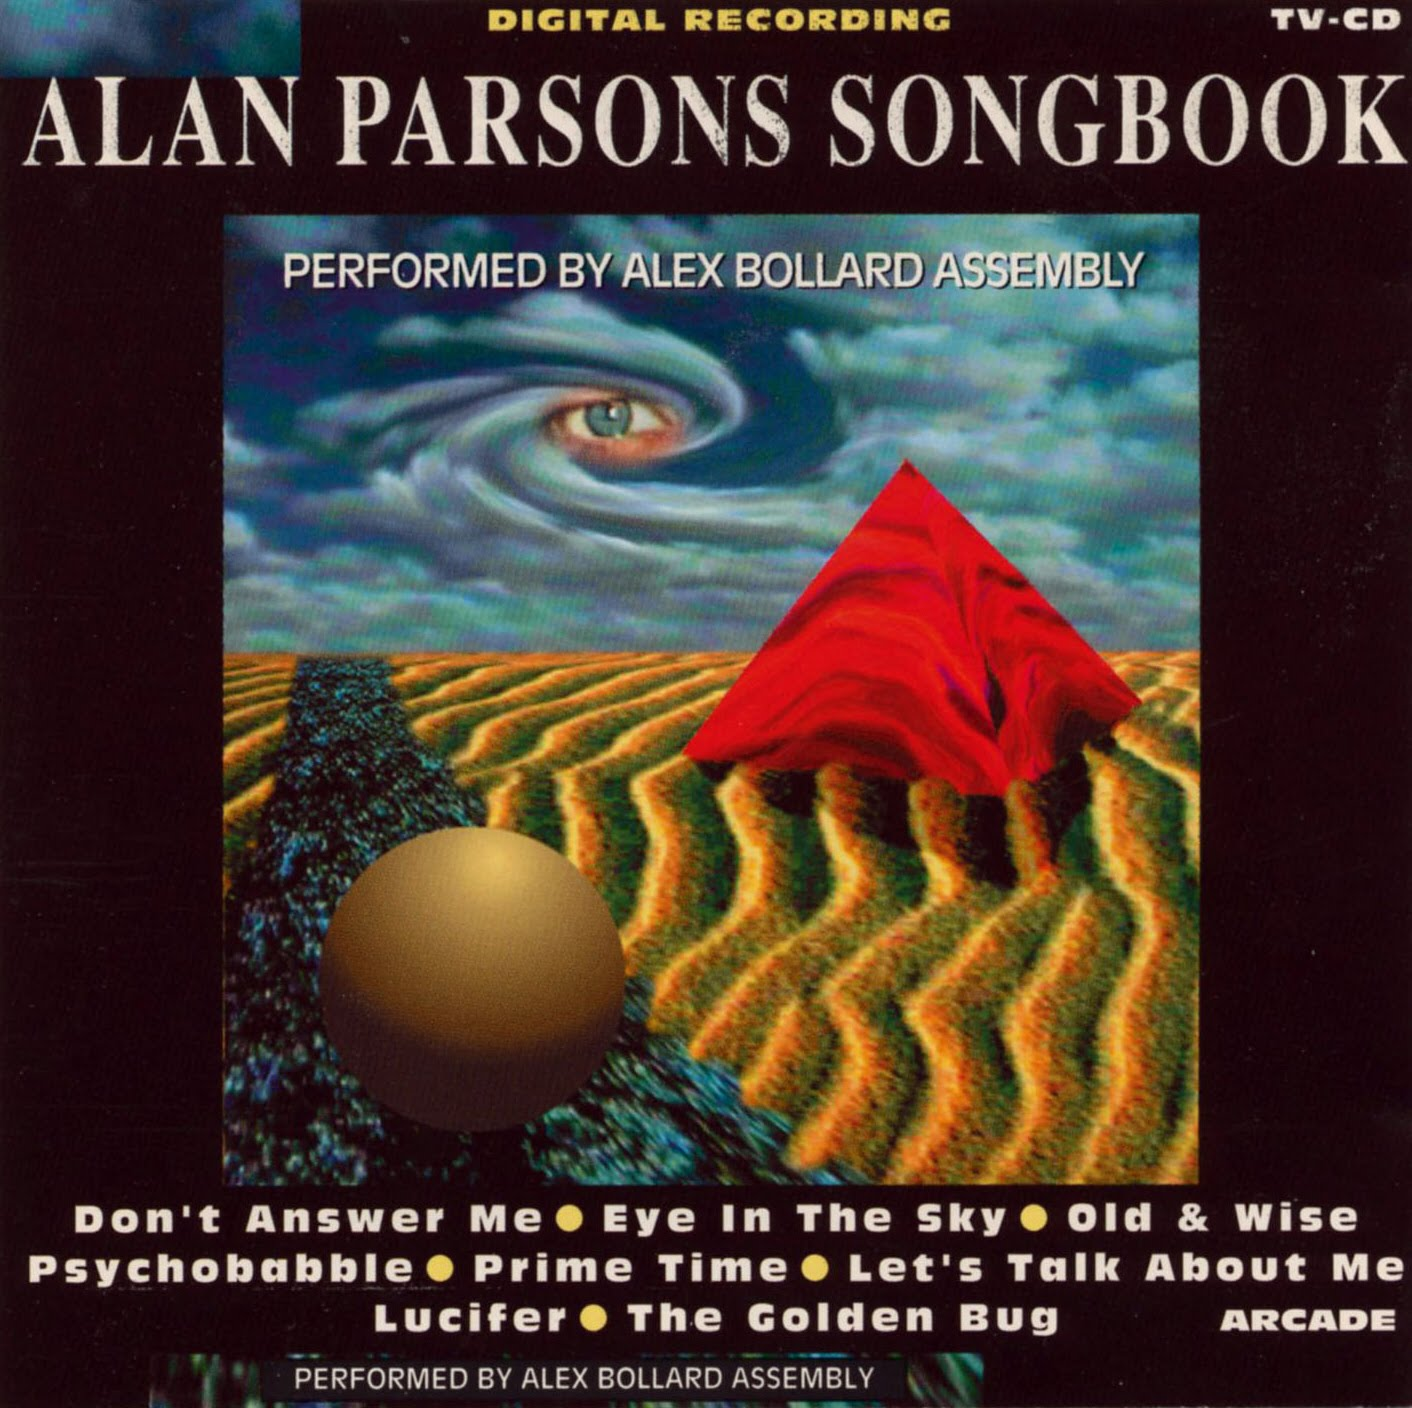 The Alan Parsons Songbook — The Alan Parsons Project   Last.fm